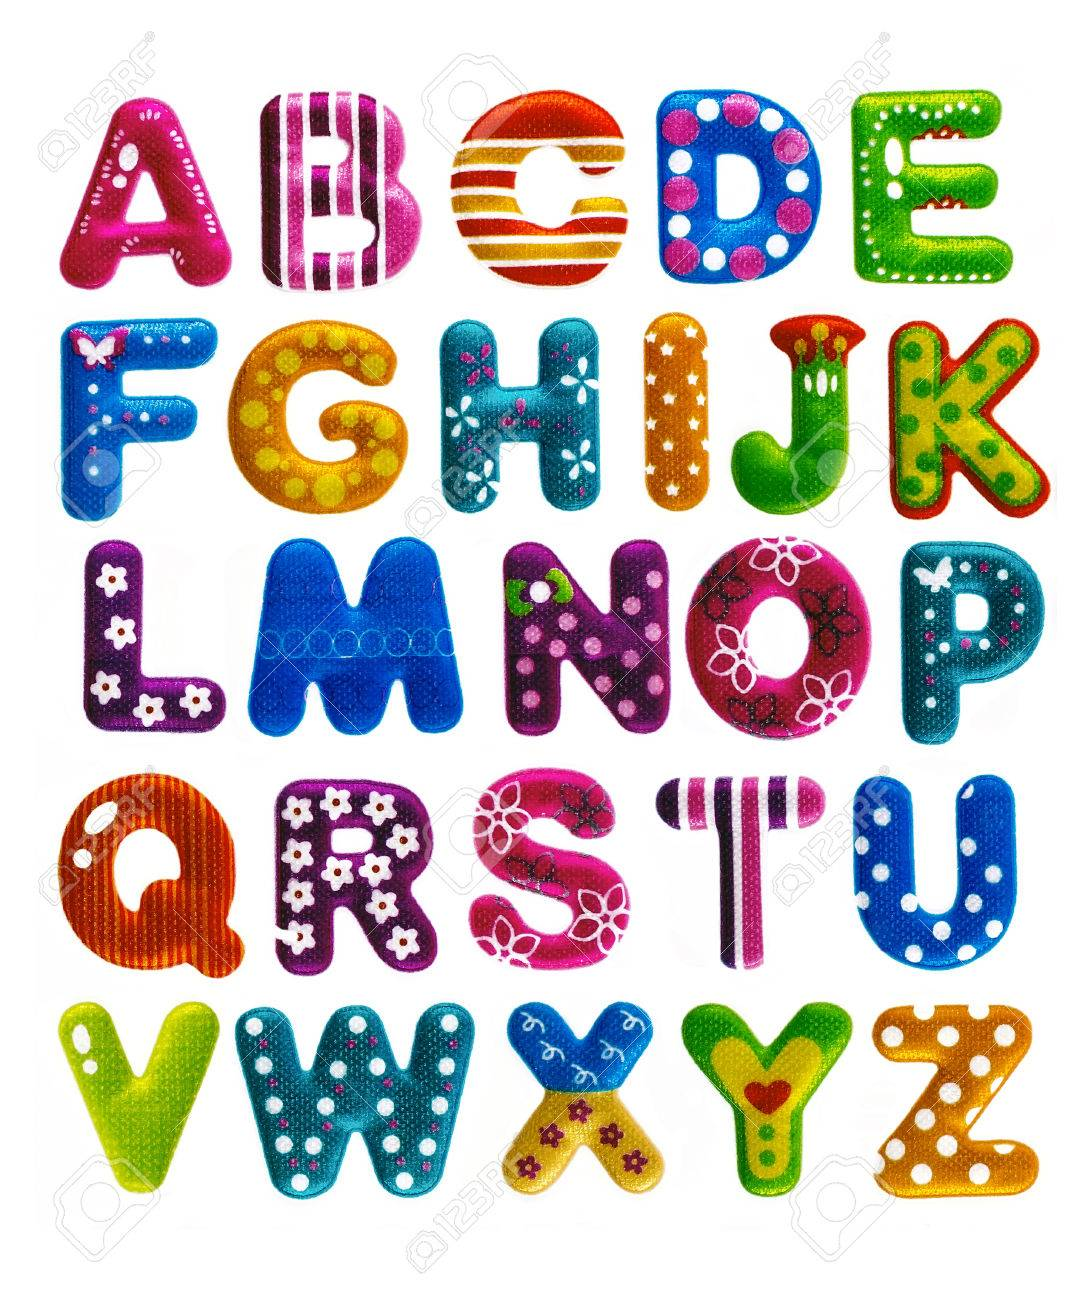 Funny English Alphabets Isolated On White Background Stock Photo, Picture  And Royalty Free Image. Image 44979772.